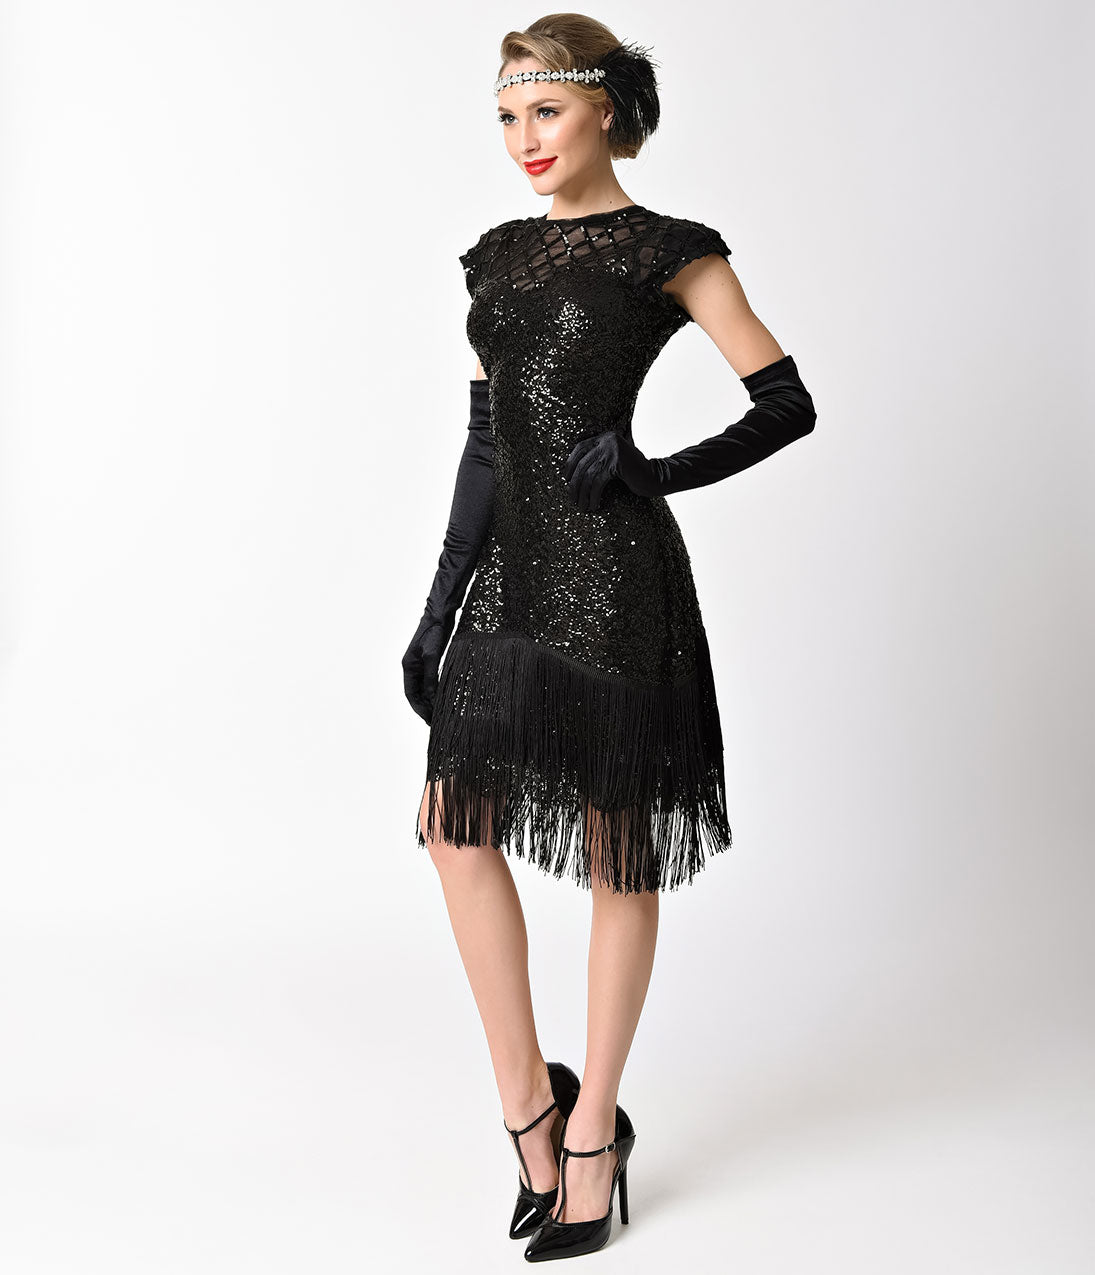 1920s Fashion & Clothing | Roaring 20s Attire Unique Vintage 1920S Black Sequin Fringe Del Mar Flapper Dress $110.00 AT vintagedancer.com